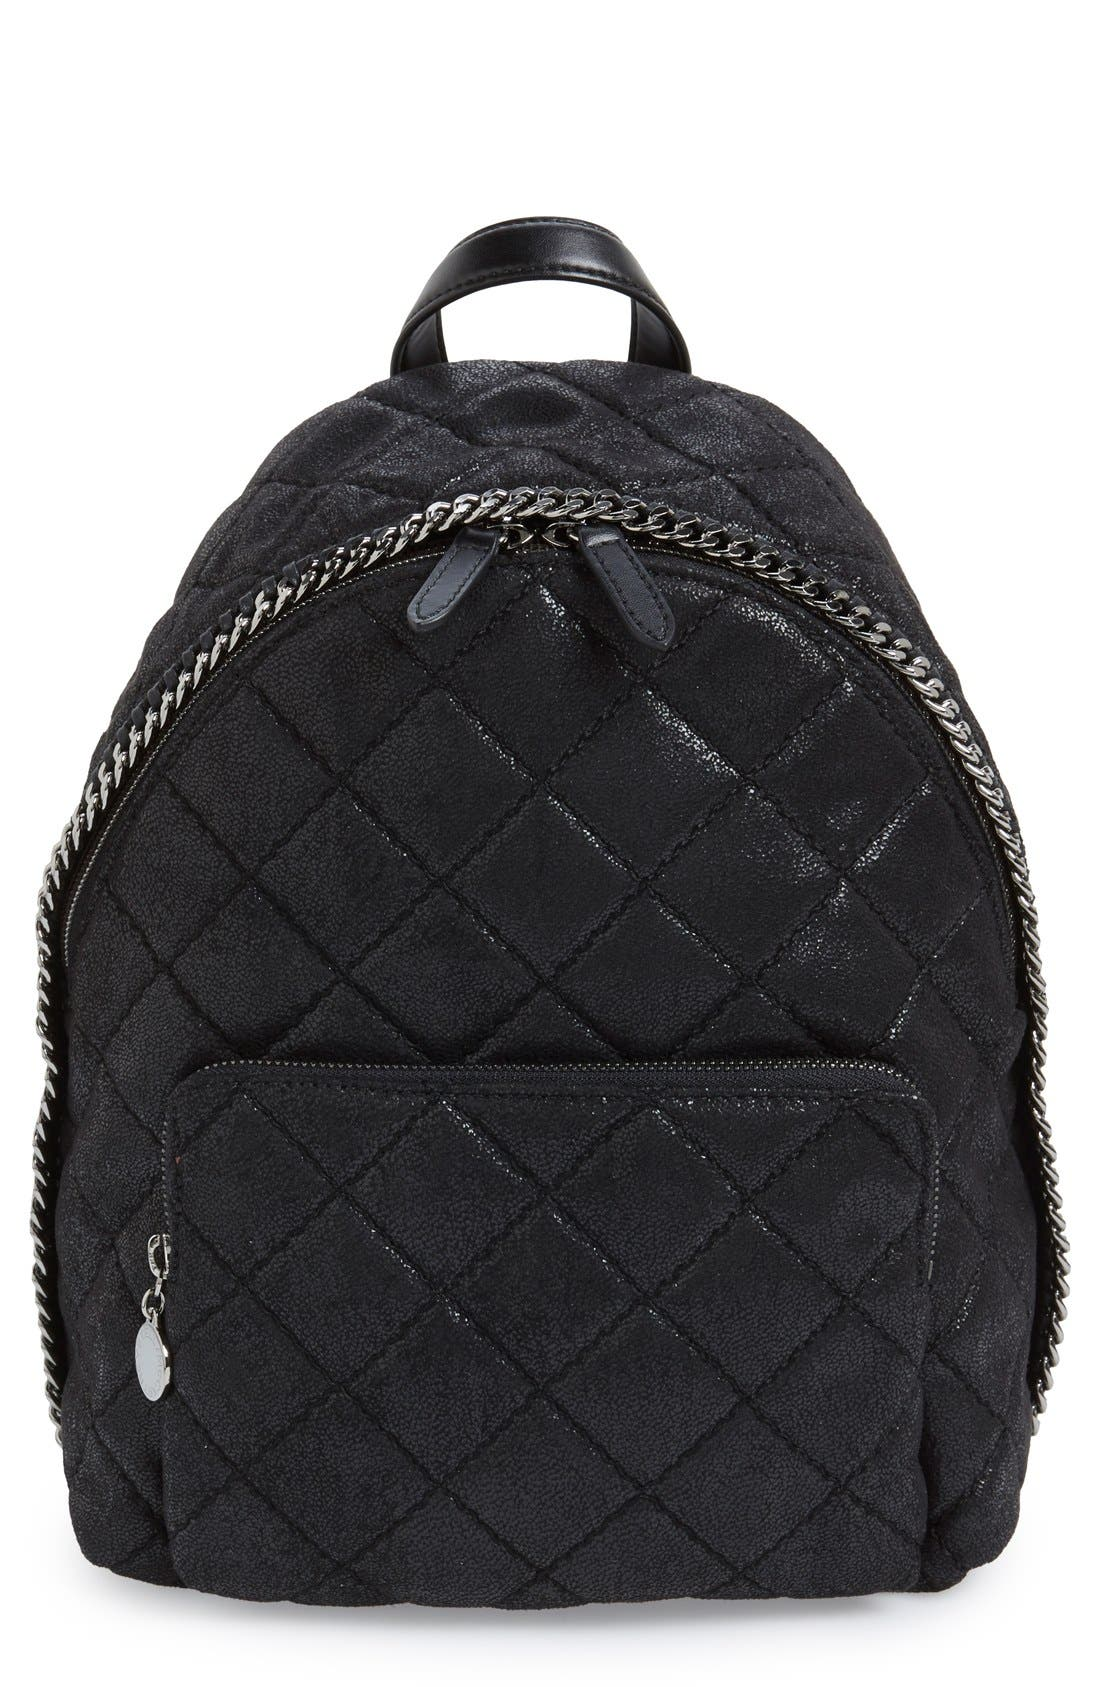 Main Image - Stella McCartney 'Mini Falabella' Faux Leather Quilted Backpack